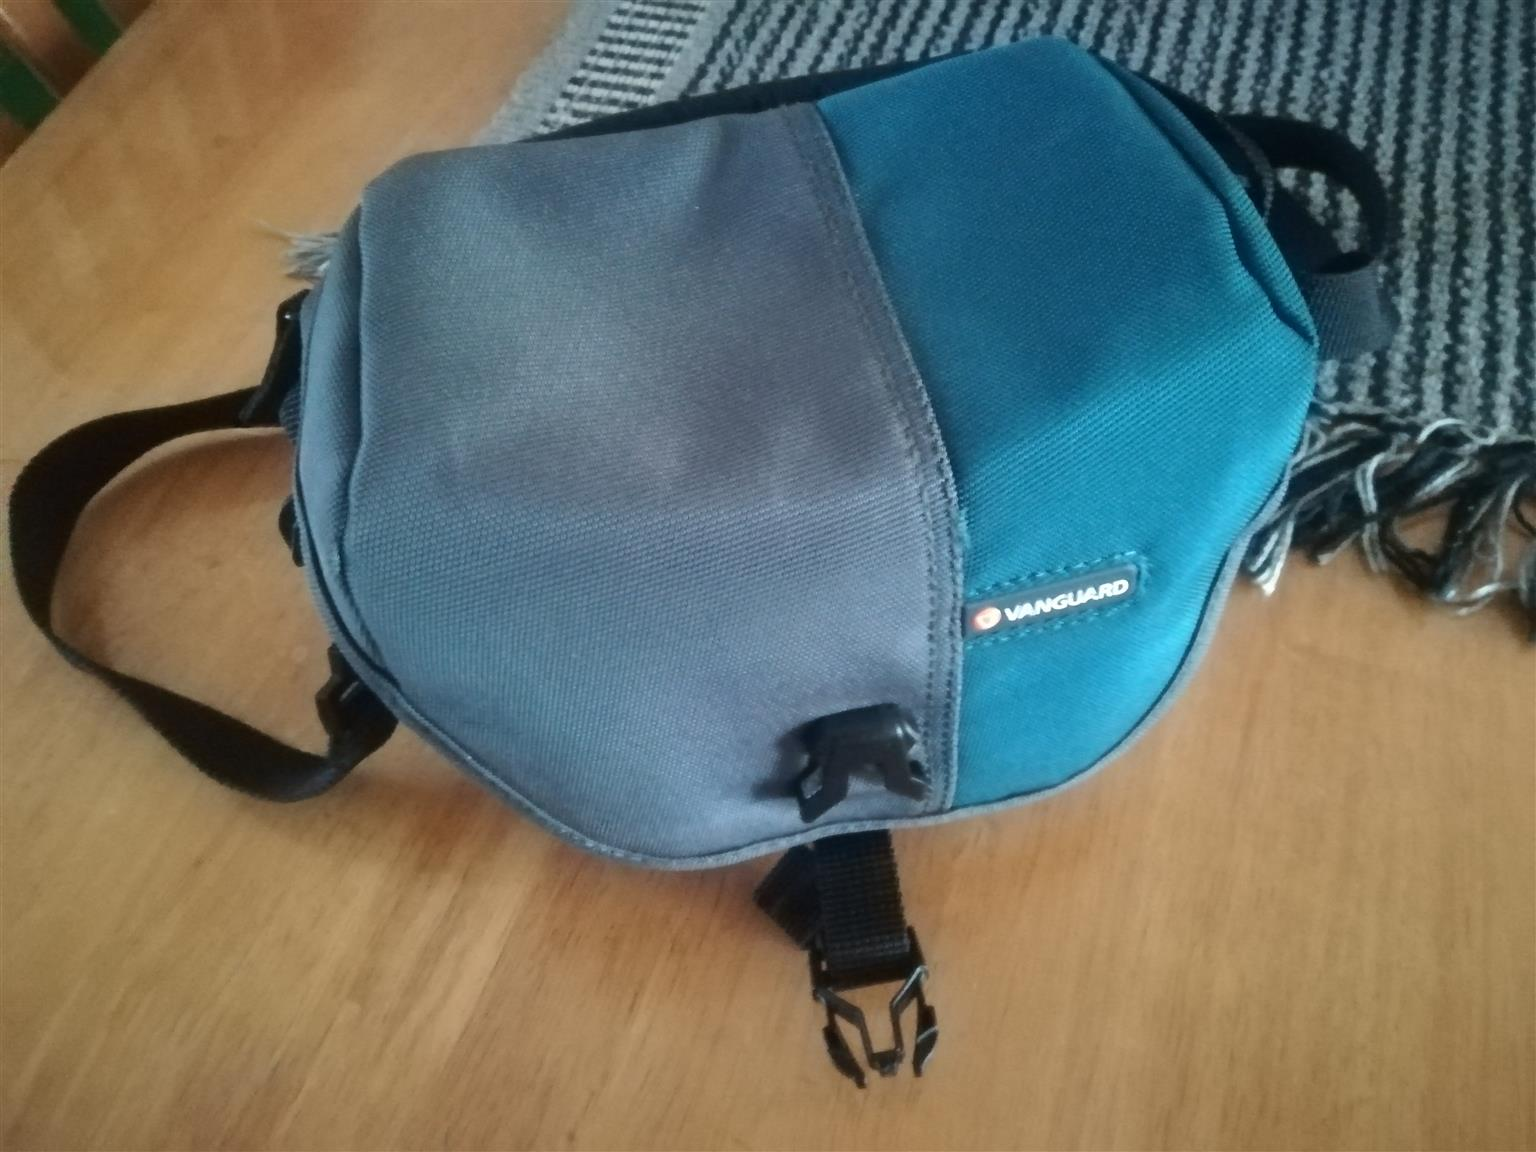 Canon Powershot SX410 with carrybag